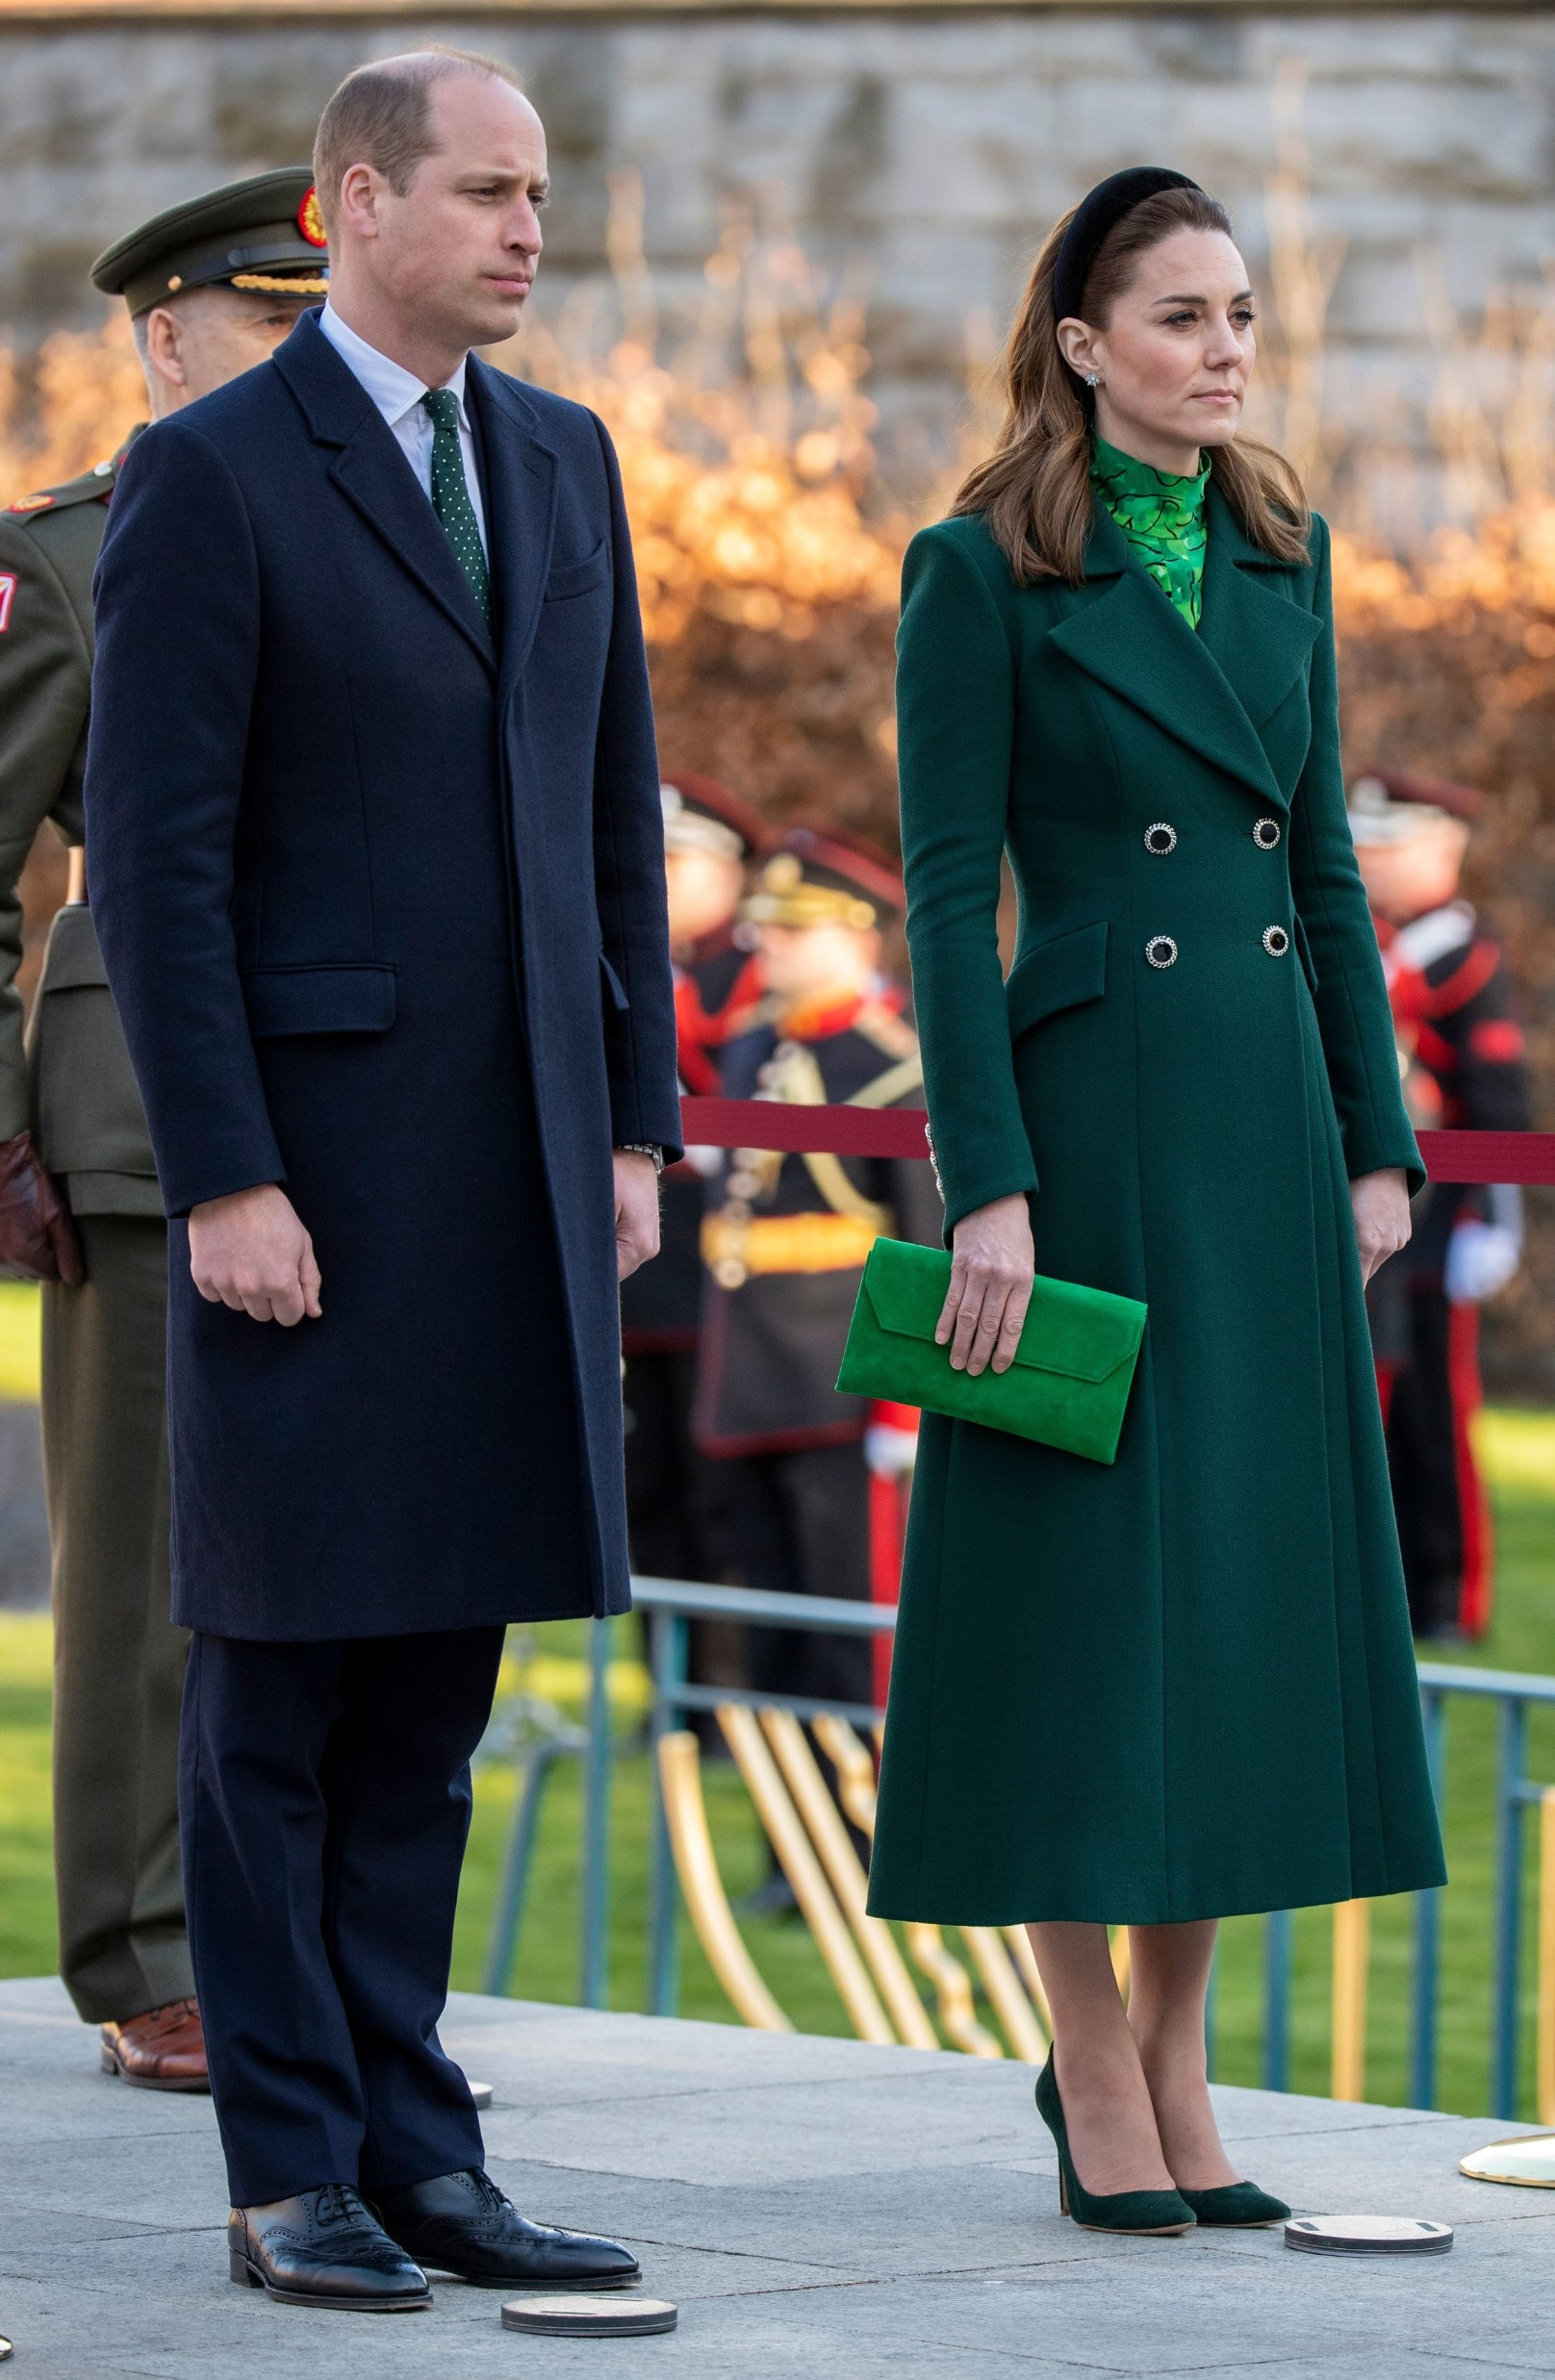 Prince William and Catherine Duchess of Cambridge lay a wreath at the Garden of Remembrance in Dublin Prince William and Catherine Duchess of Cambridge visit to Ireland - 03 Mar 2020 A place of remembrance and reflection, the Garden of Remembrance in Dublin is dedicated to those who gave their lives for Irish independence., Image: 502814739, License: Rights-managed, Restrictions: , Model Release: no, Credit line: Tim Rooke / Shutterstock Editorial / Profimedia